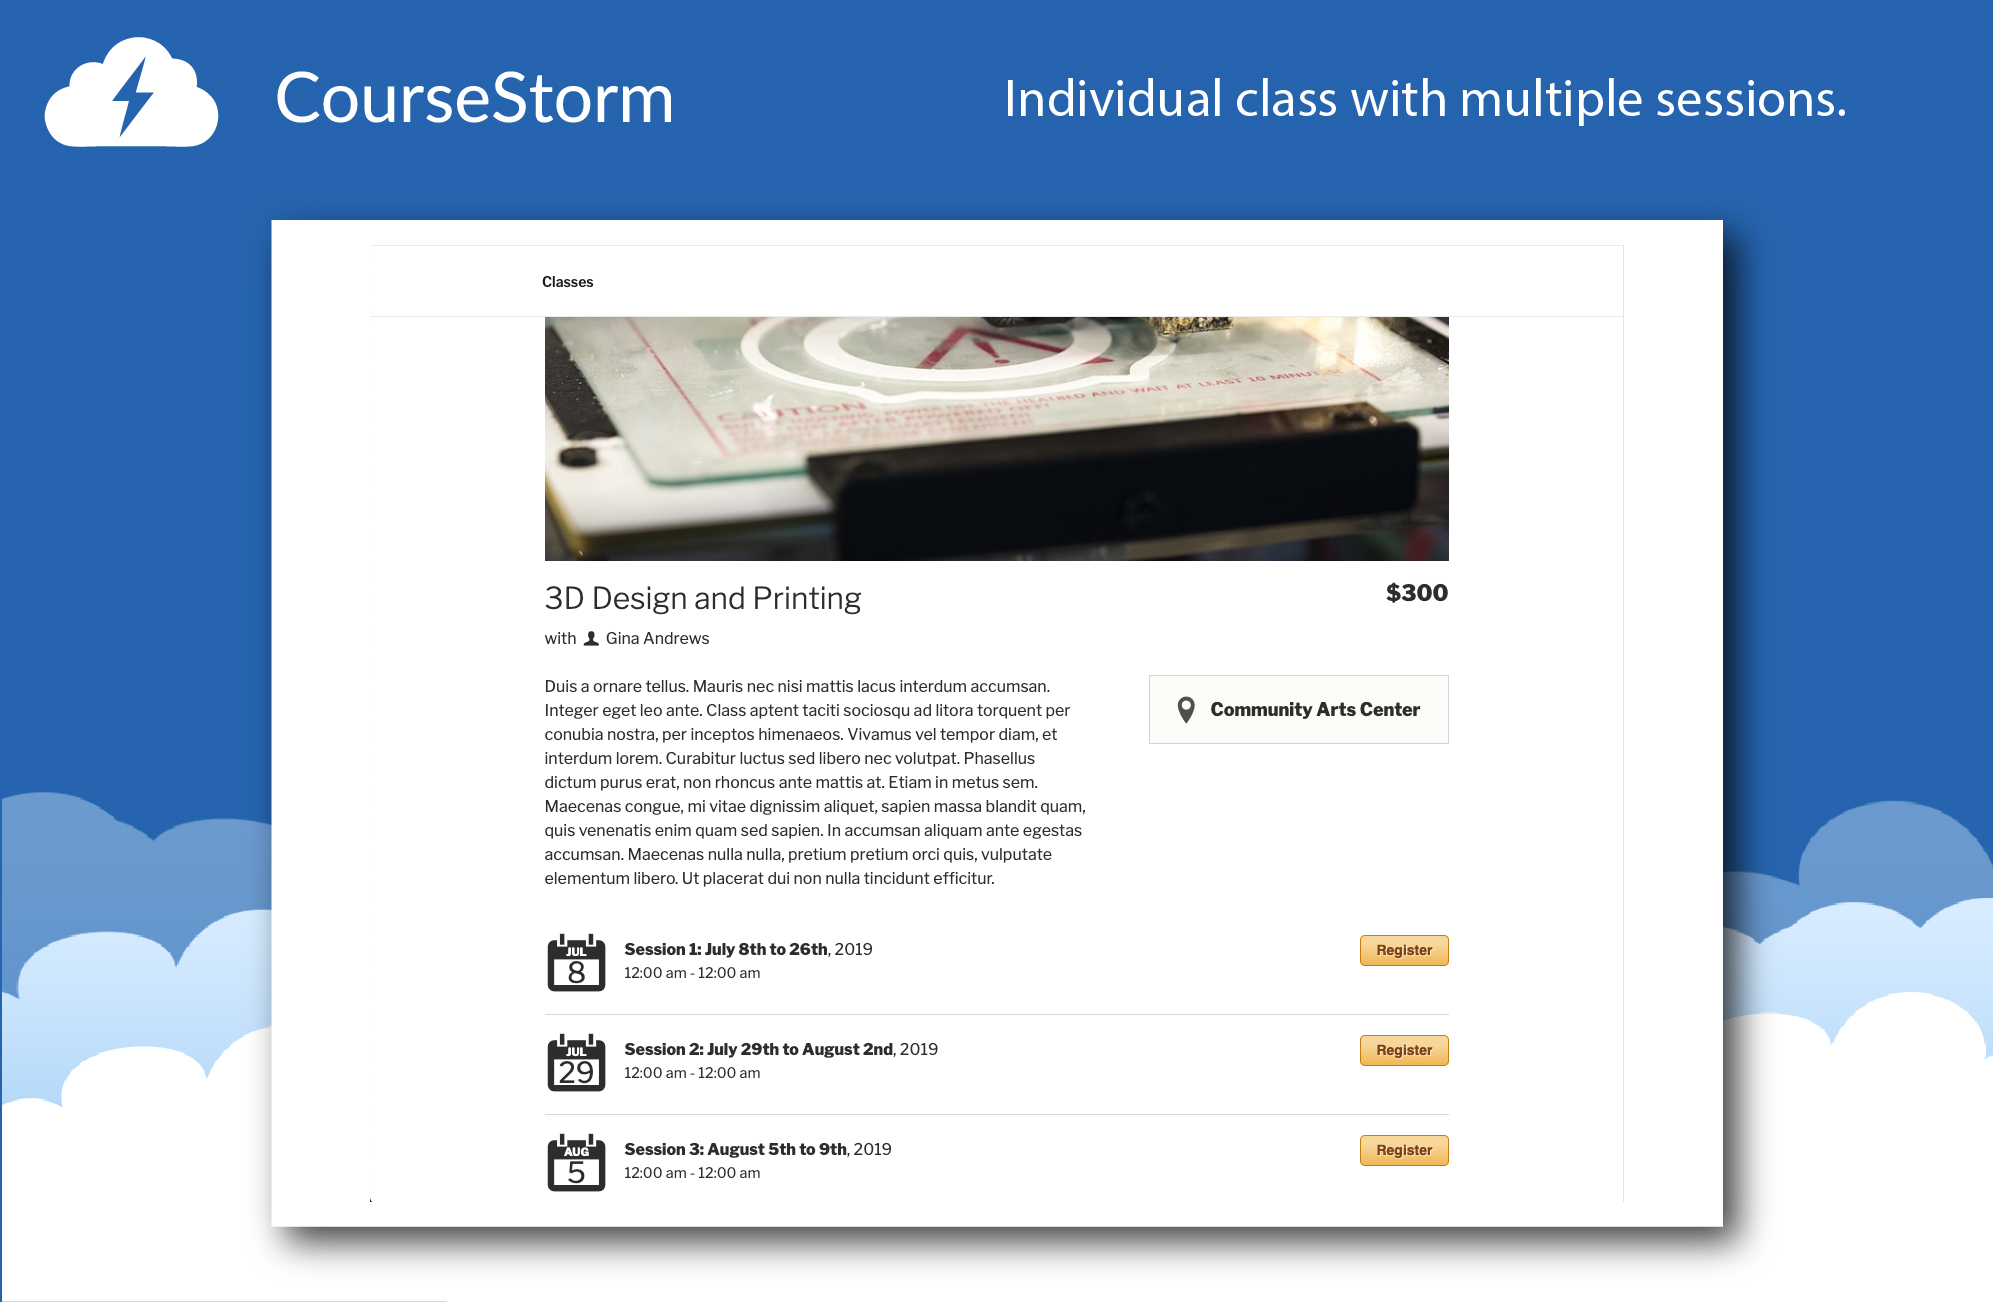 Website Individual Class with Multiple Sessions: Show your students all their options for class sessions.